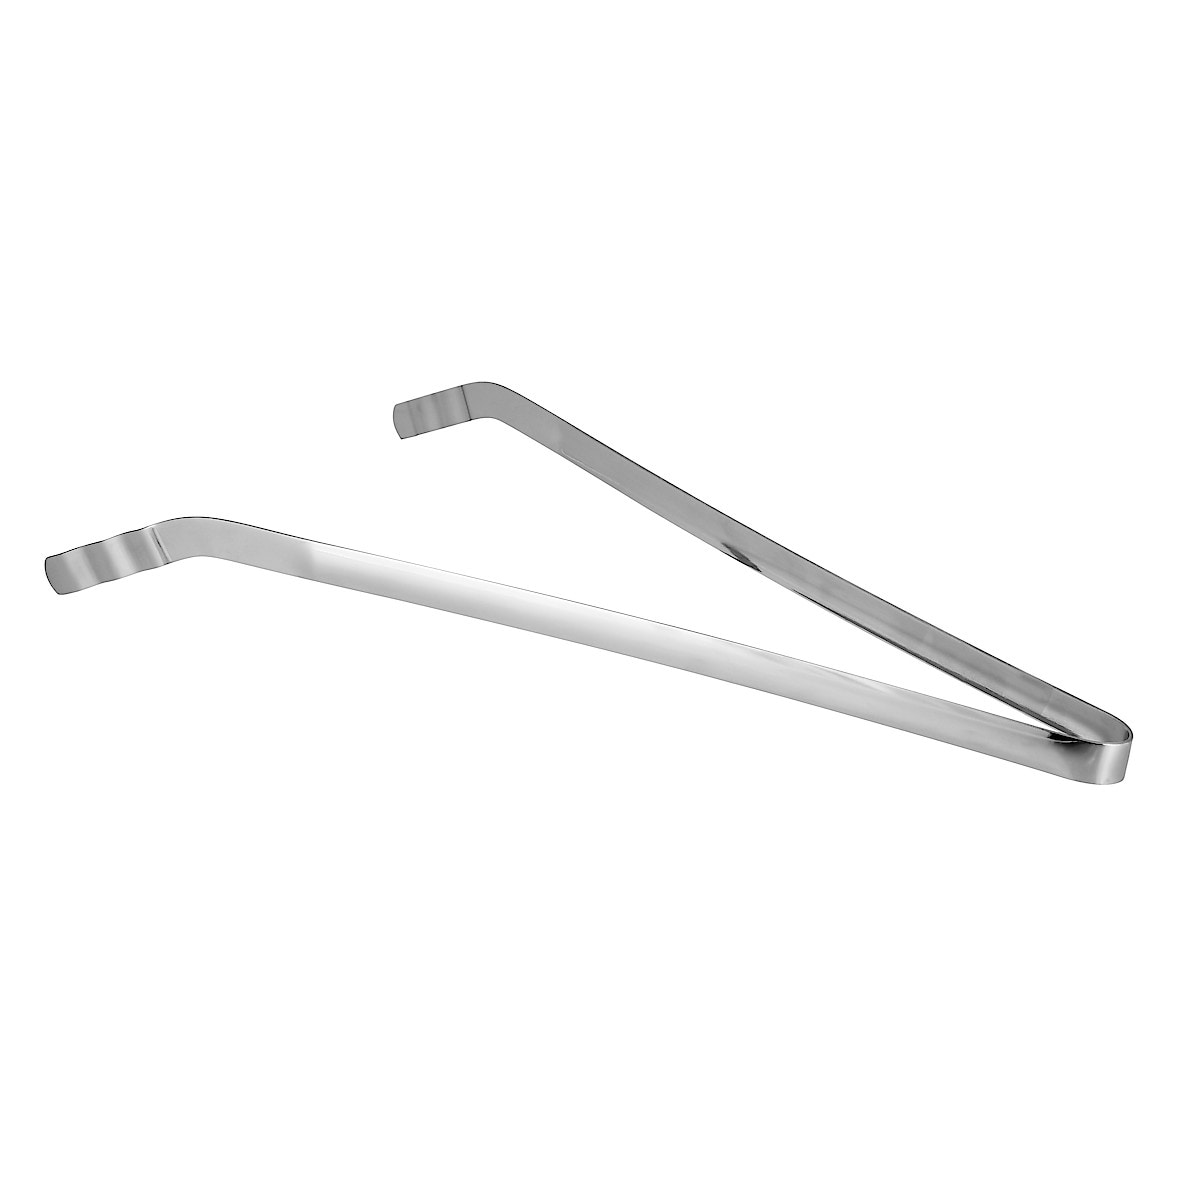 Curved Barbecue Tongs